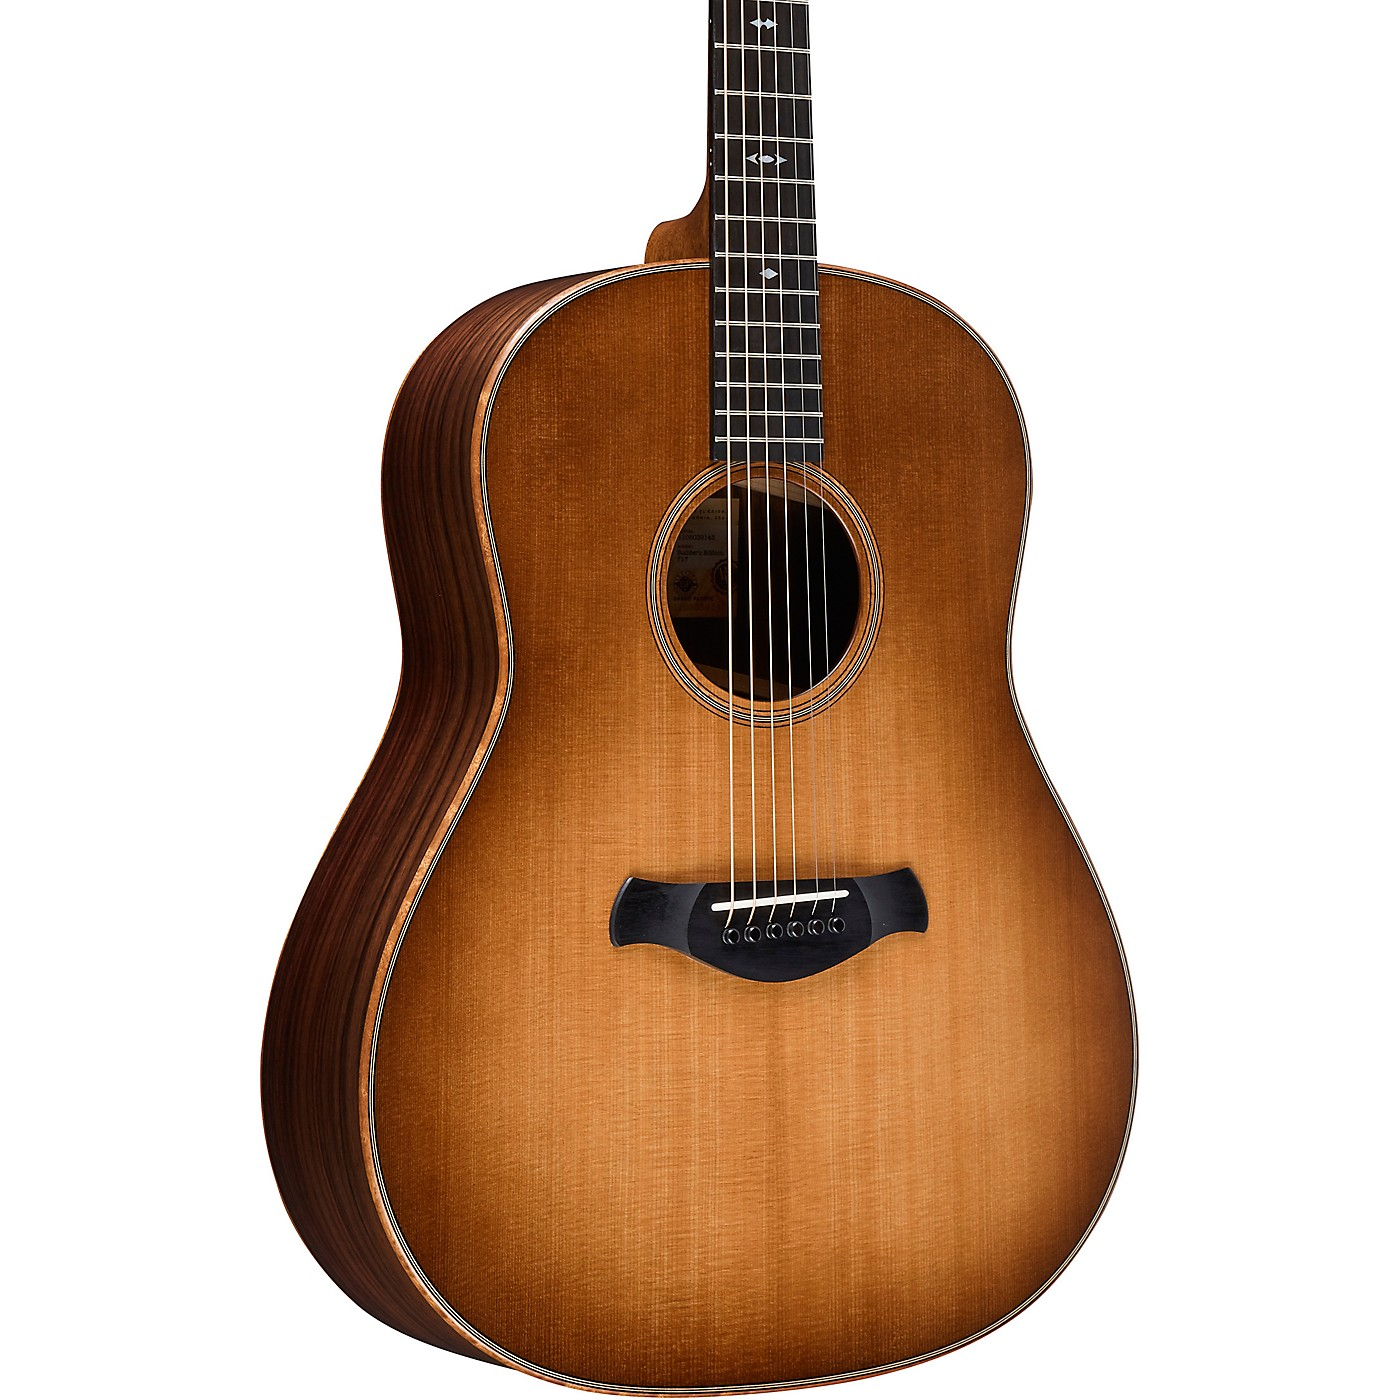 Taylor Builder's Edition 717 Grand Pacific Dreadnought Acoustic Guitar thumbnail